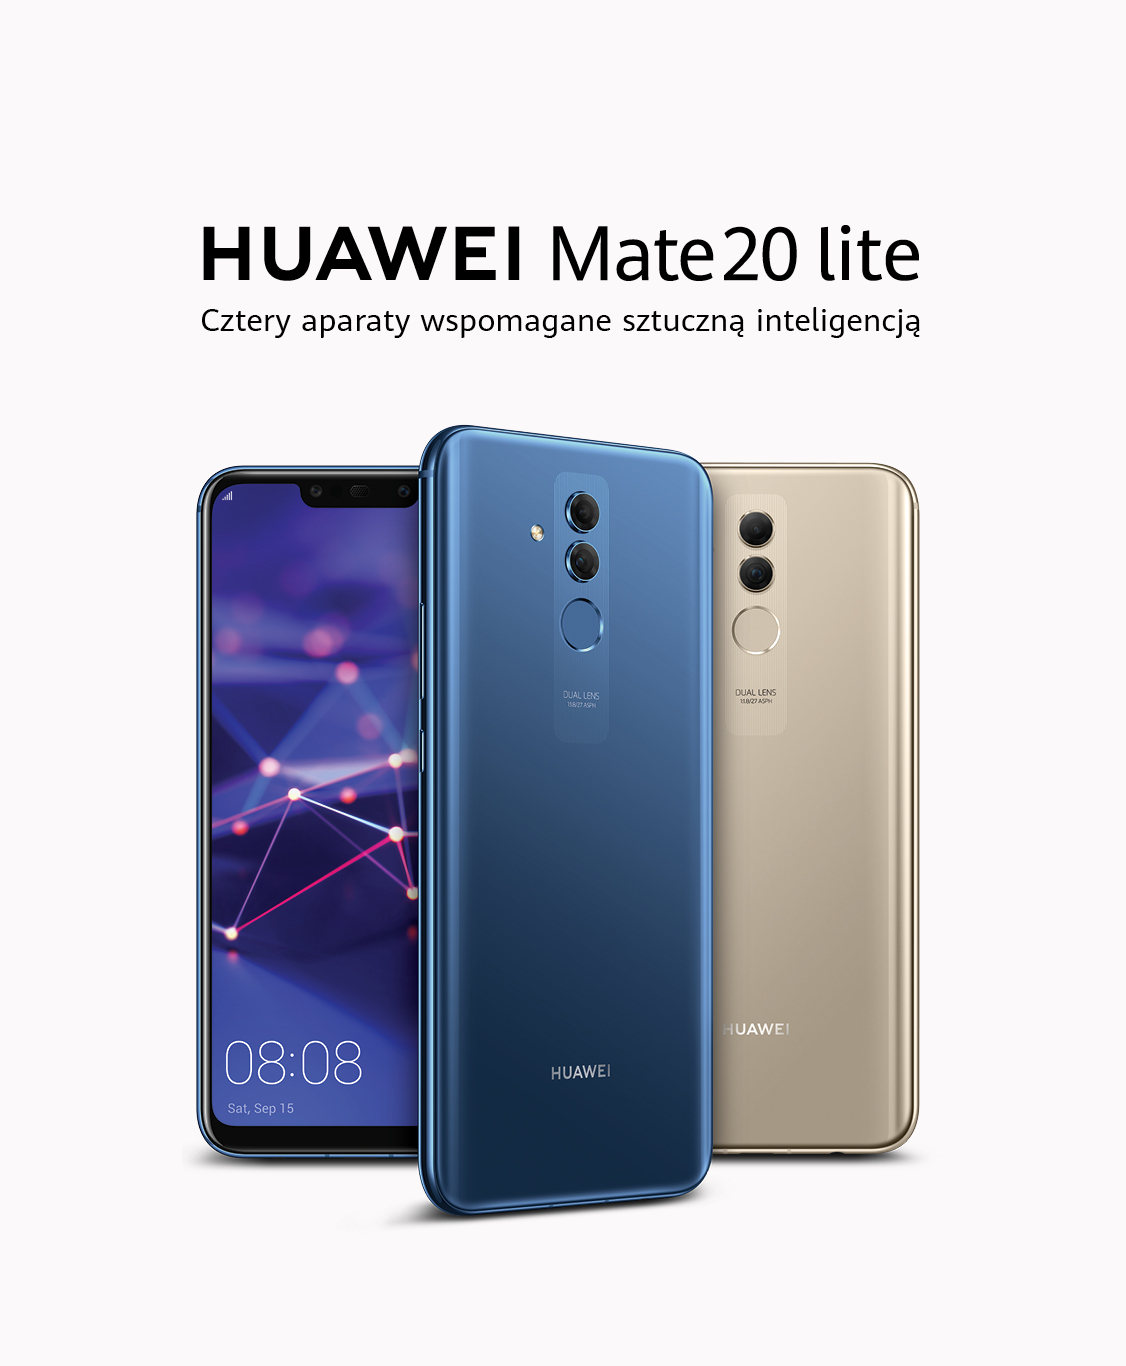 smartfon huawei mate 20 lite poczw rny aparat huawei polska. Black Bedroom Furniture Sets. Home Design Ideas